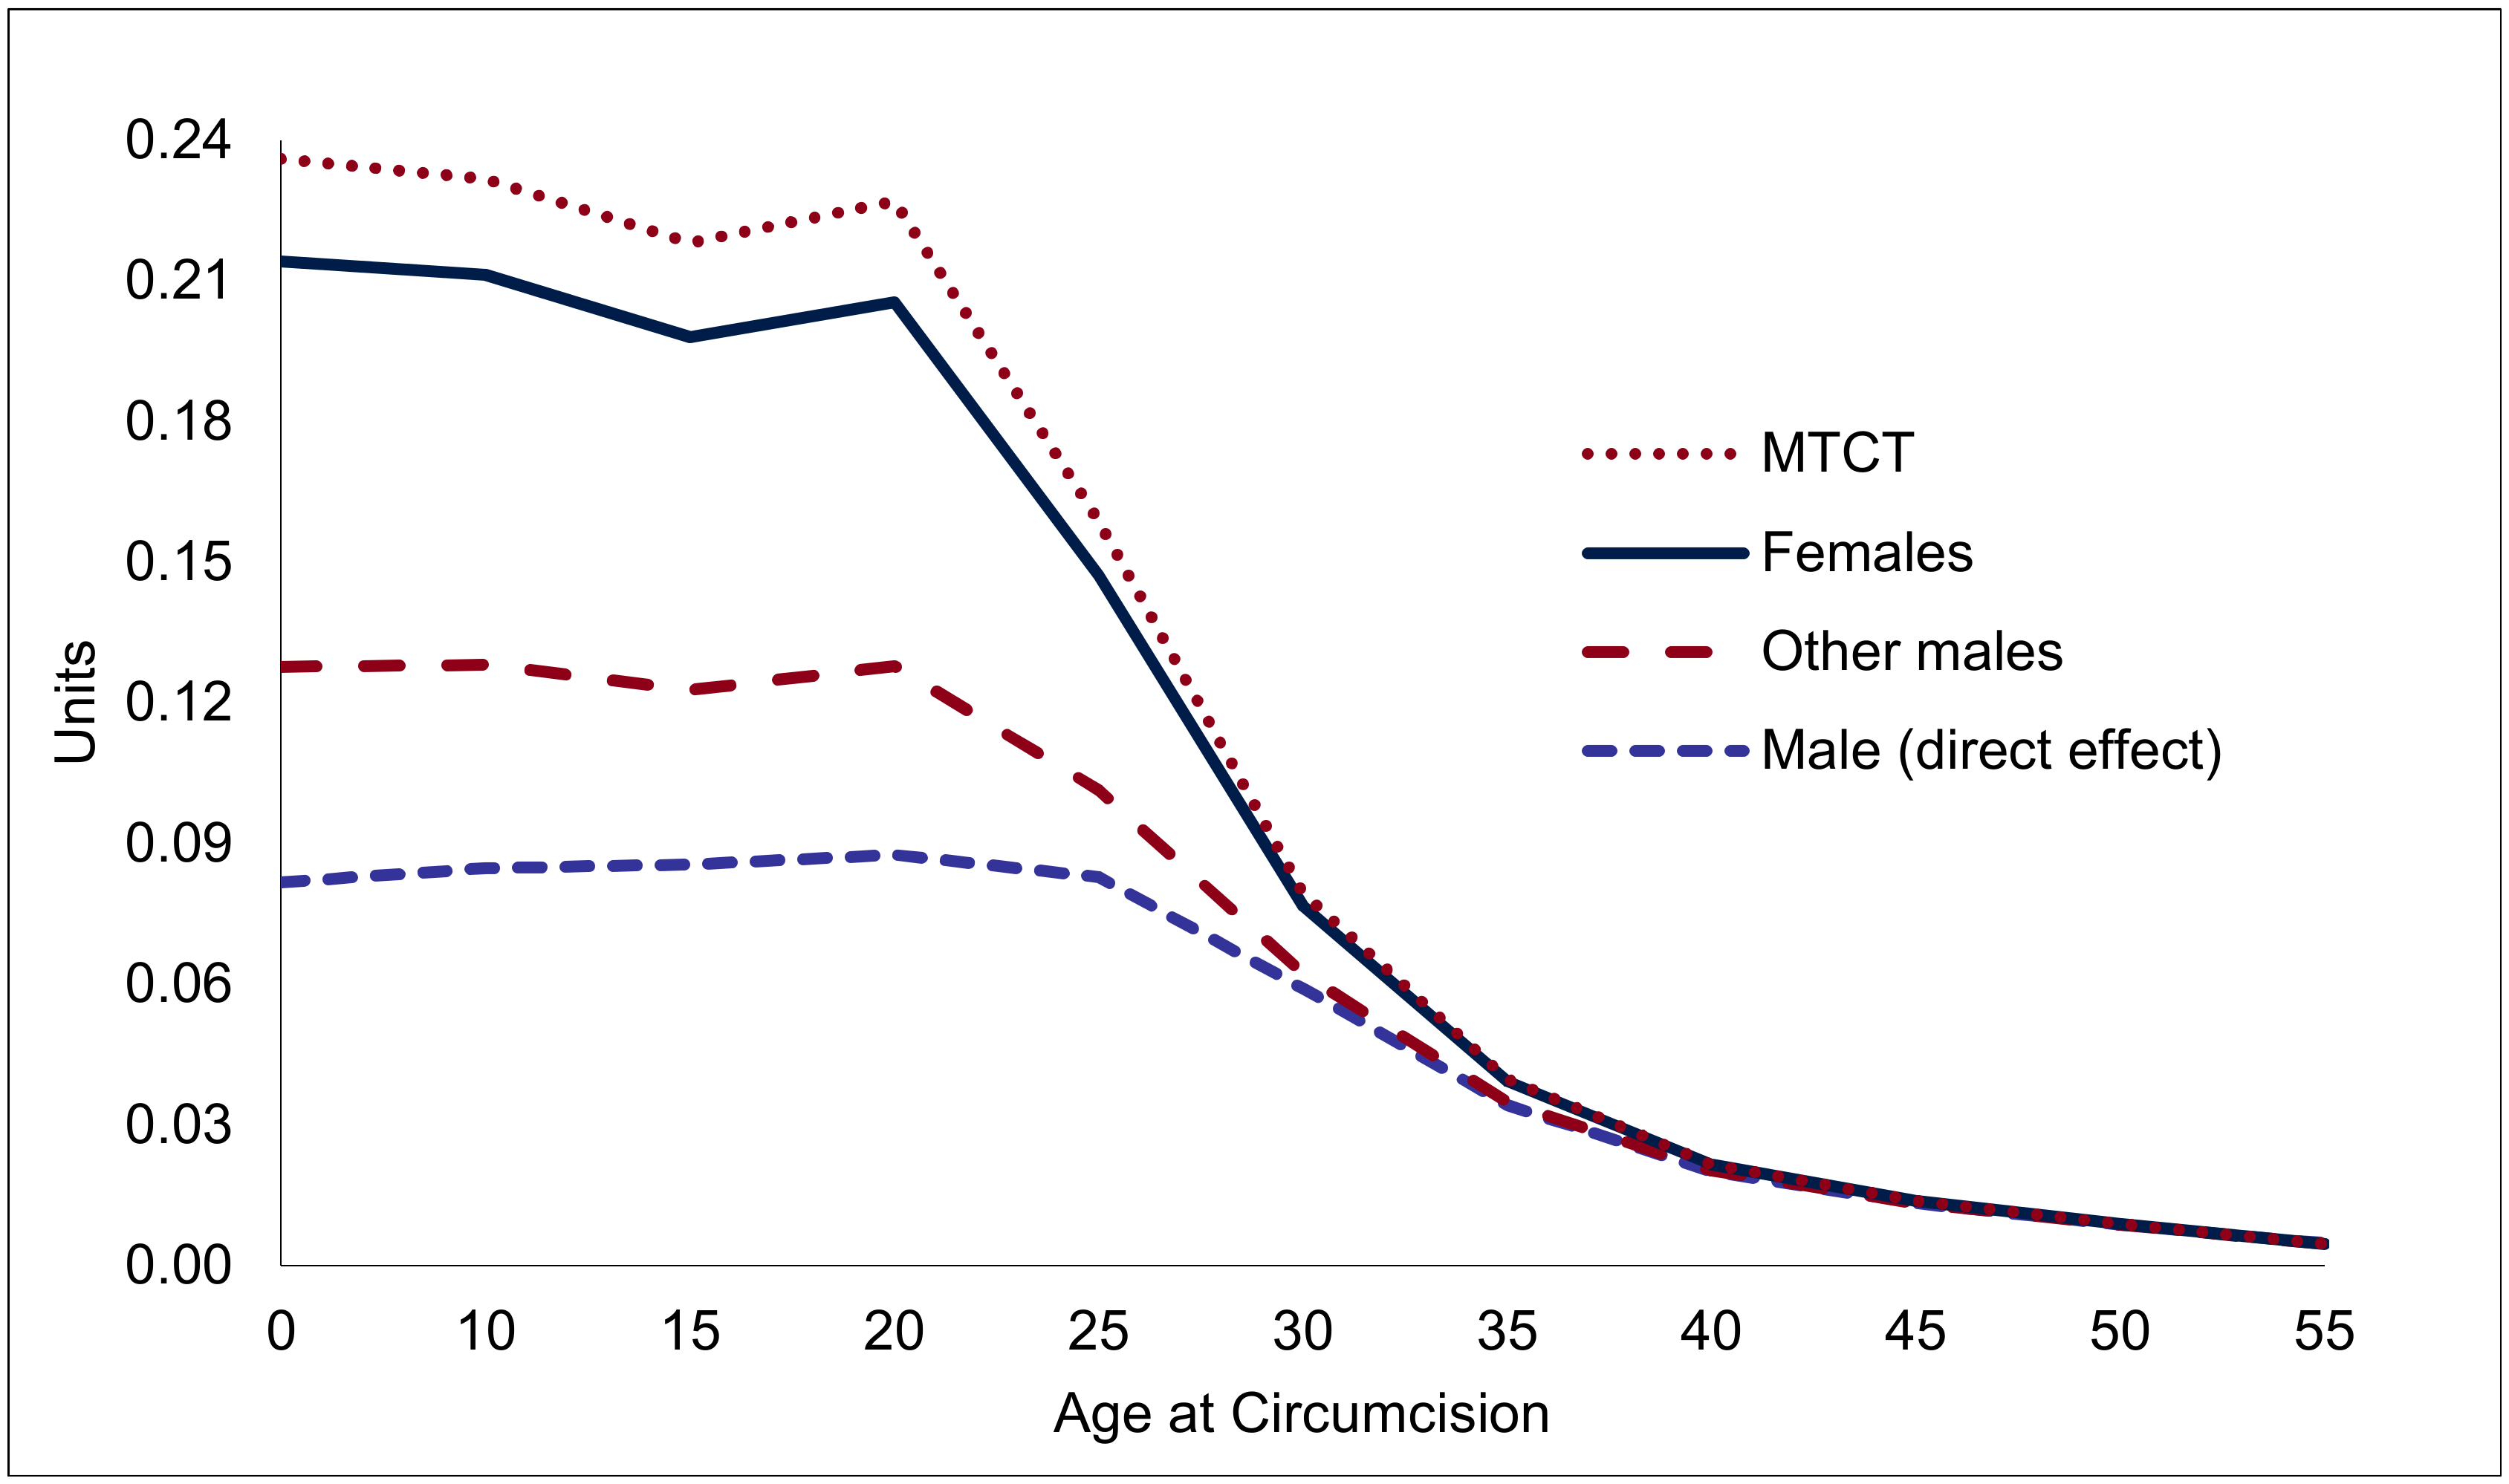 Accumulated effect of one male circumcision on HIV incidence, by age of individual circumcised (HIV infections prevented, in units).